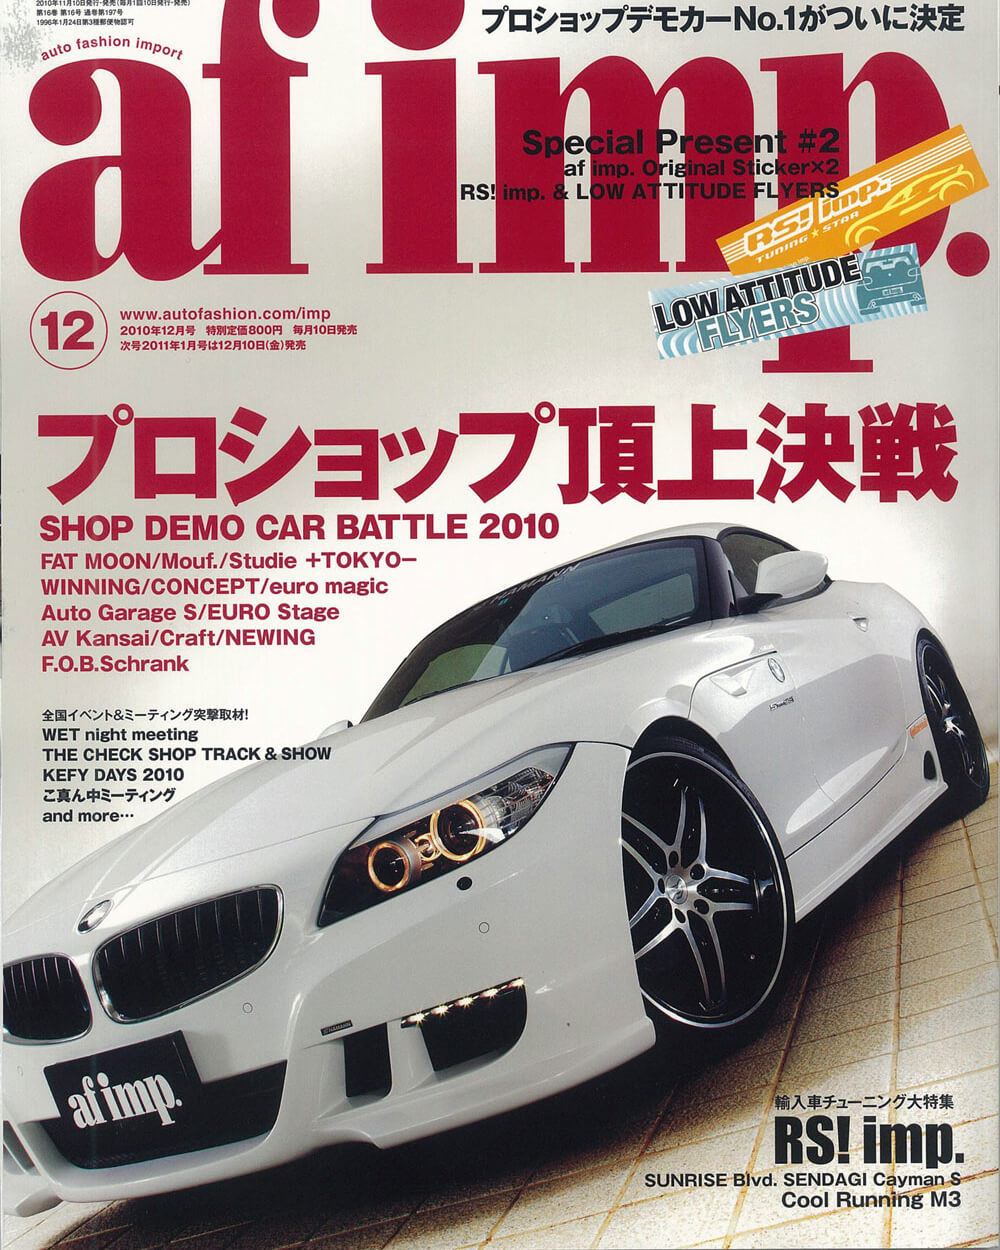 af imp Dec. issue